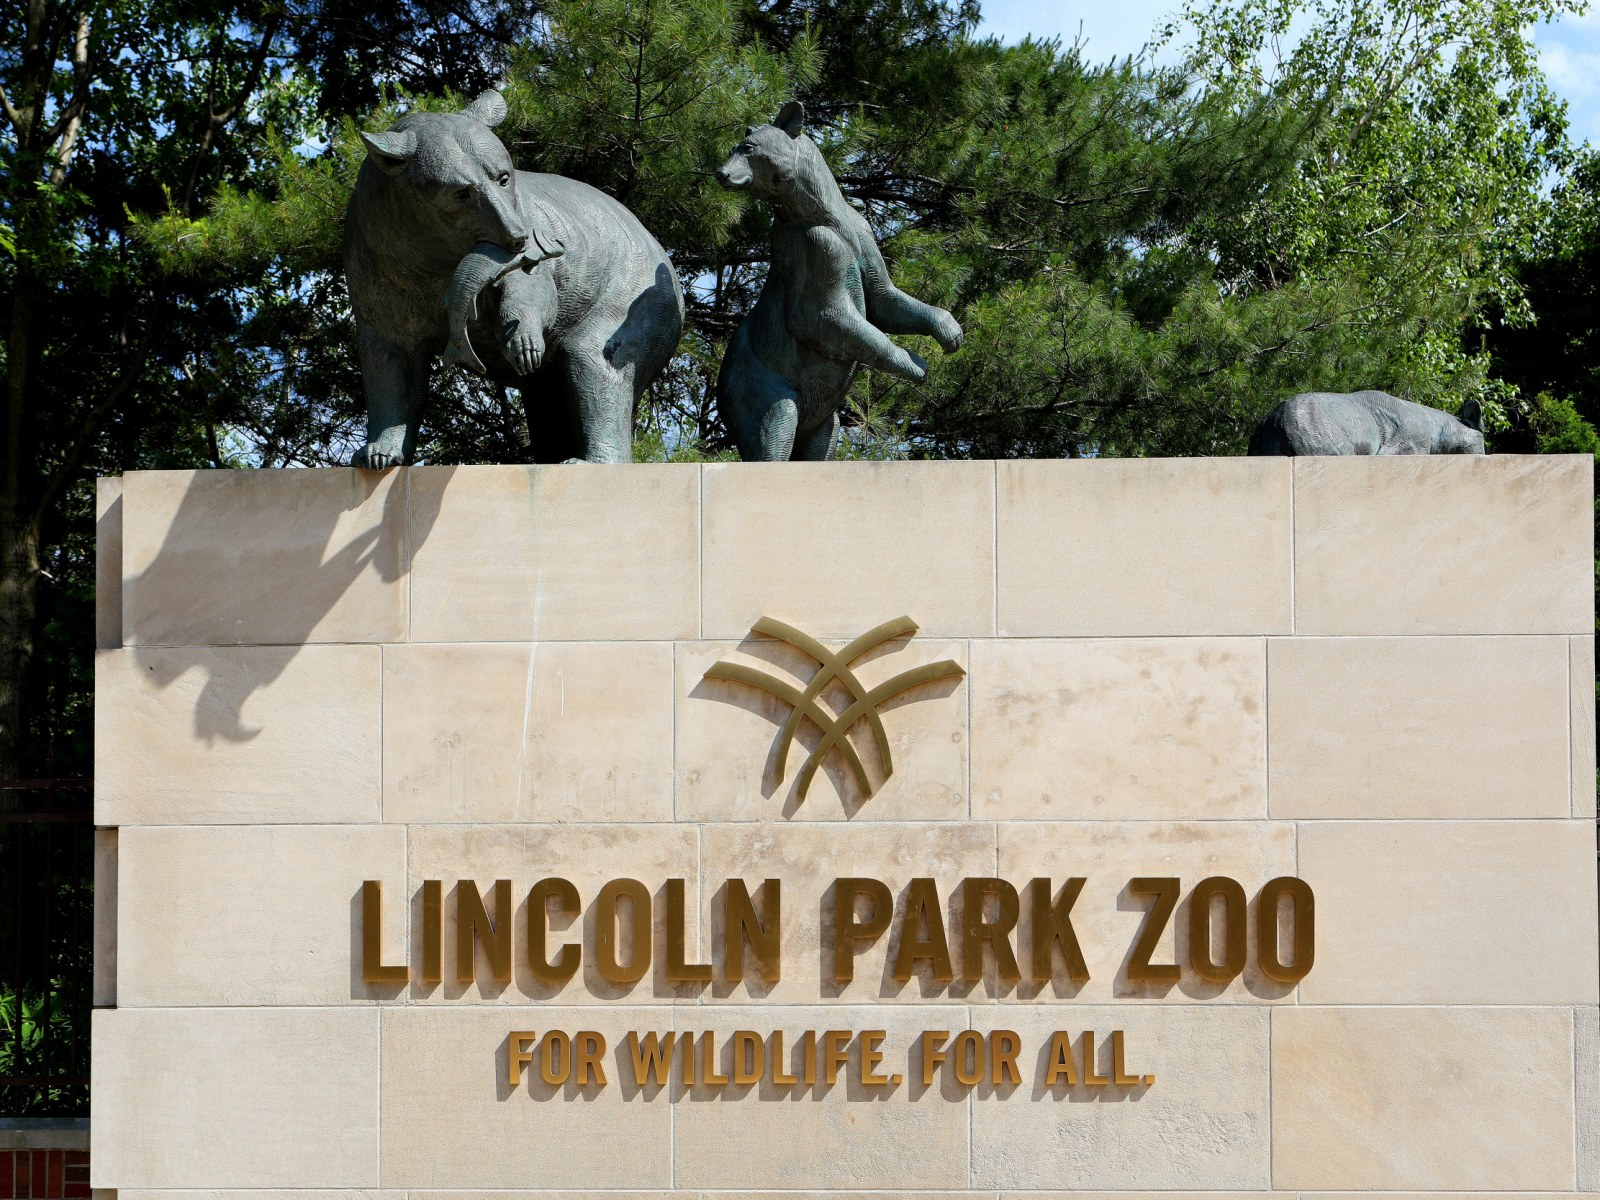 Chicago S Lincoln Park Zoo Was Not Looted And There Are No Hippos On Lake Shore Drive